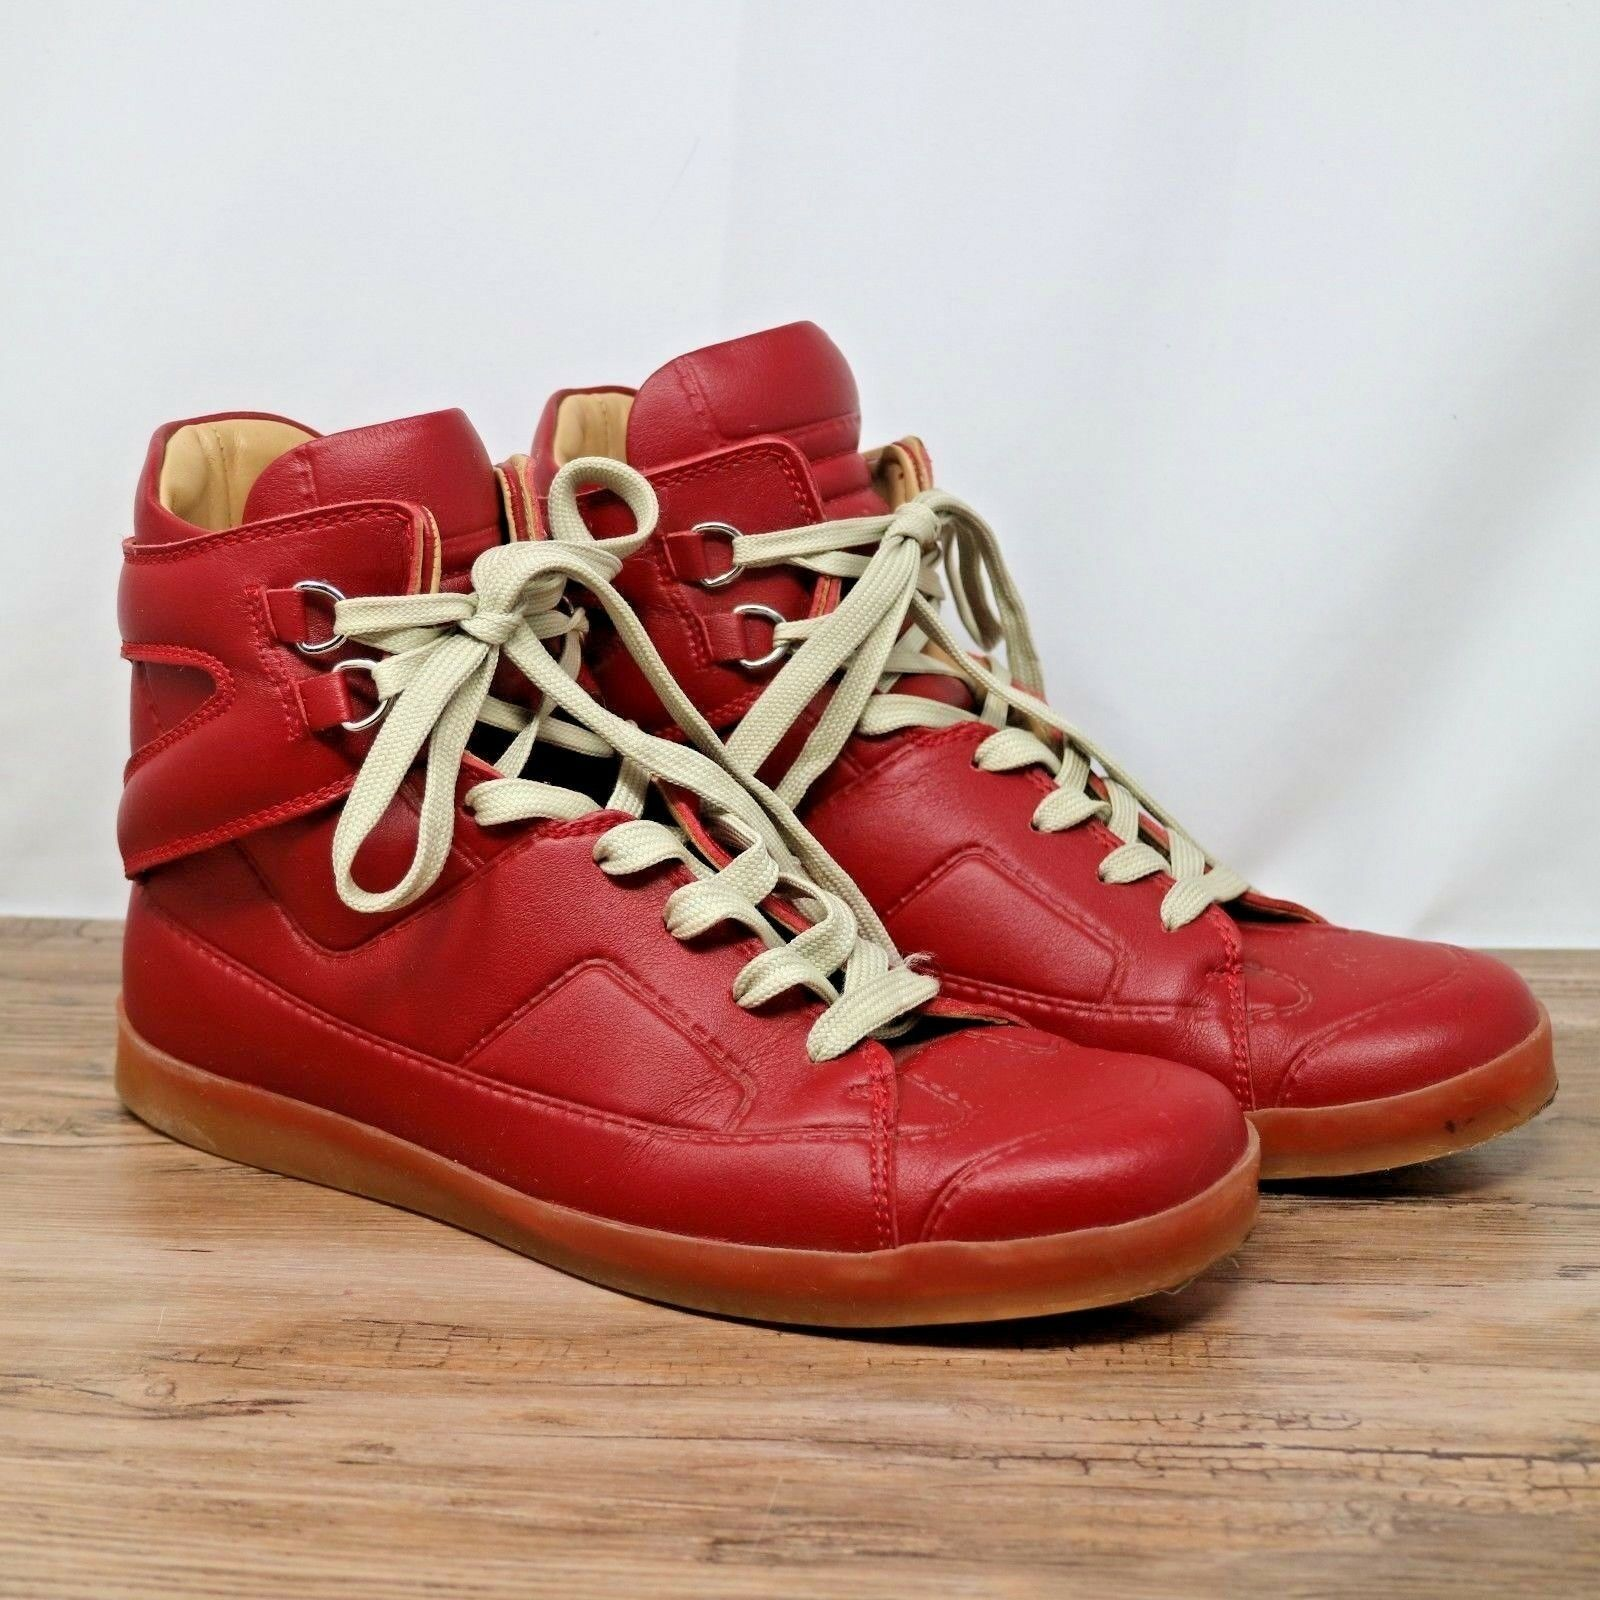 Maison Martin Margiela x H&M Mens Red Leather Hi Tops Sneakers Shoes 43 US